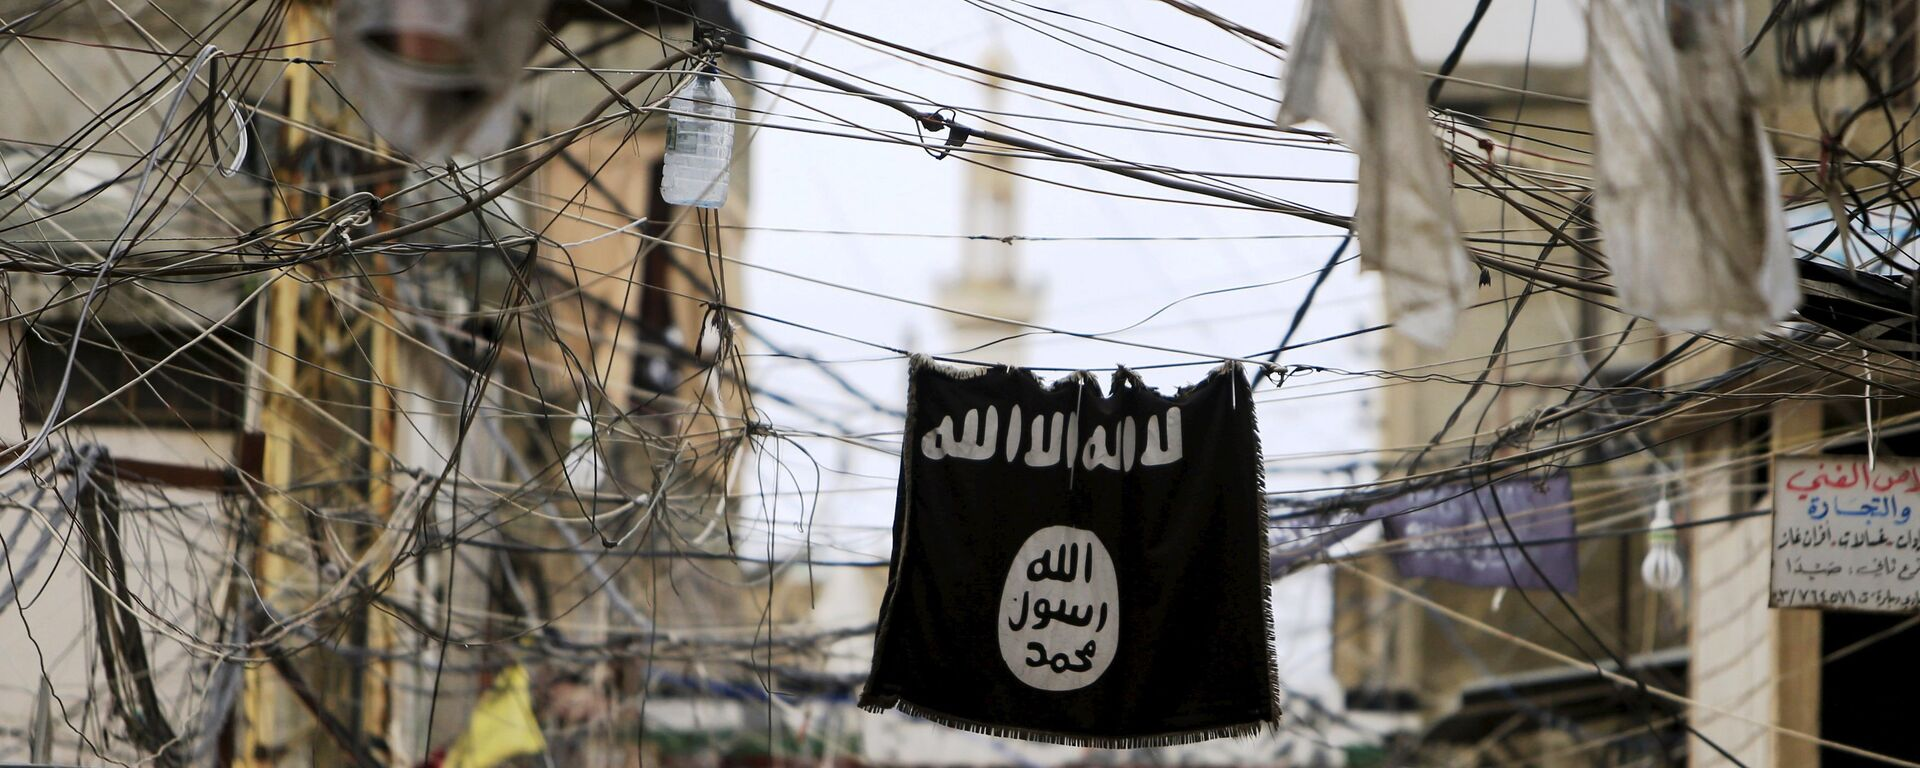 An Islamic State flag hangs amid electric wires over a street. - Sputnik International, 1920, 20.02.2021